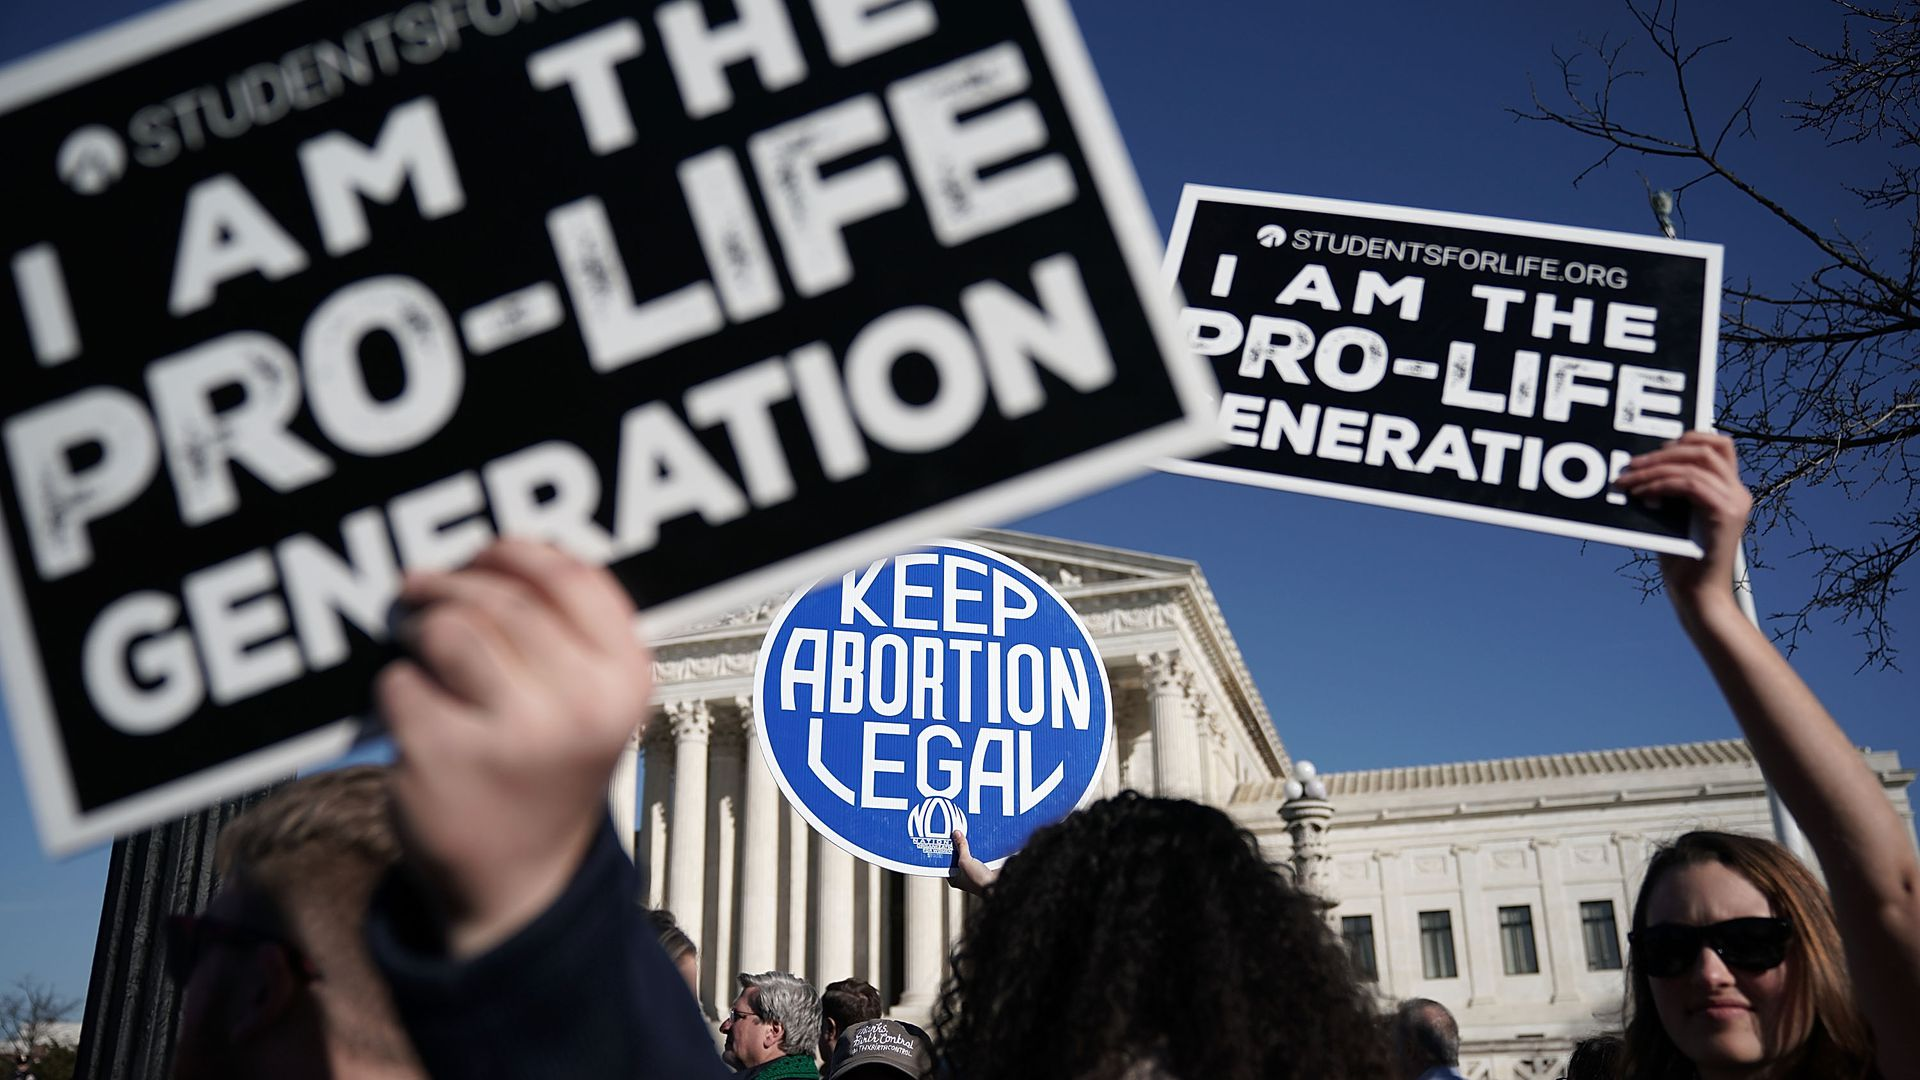 Pro-life activists hold up signs in front of a pro-choice activist.